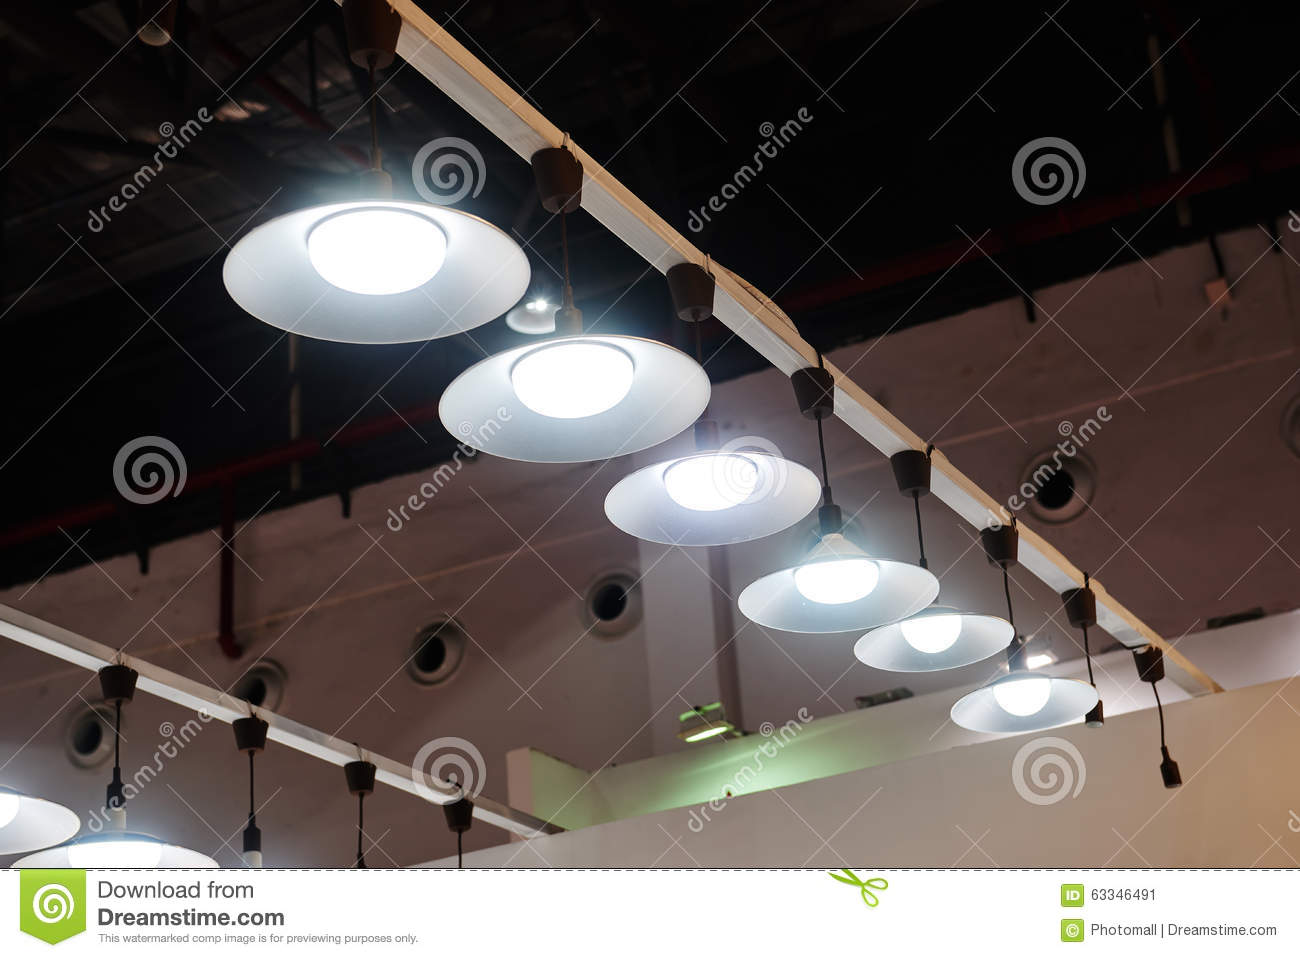 Led hanging lighting in office stock image image of bulbs hall led hanging lighting in office mozeypictures Choice Image